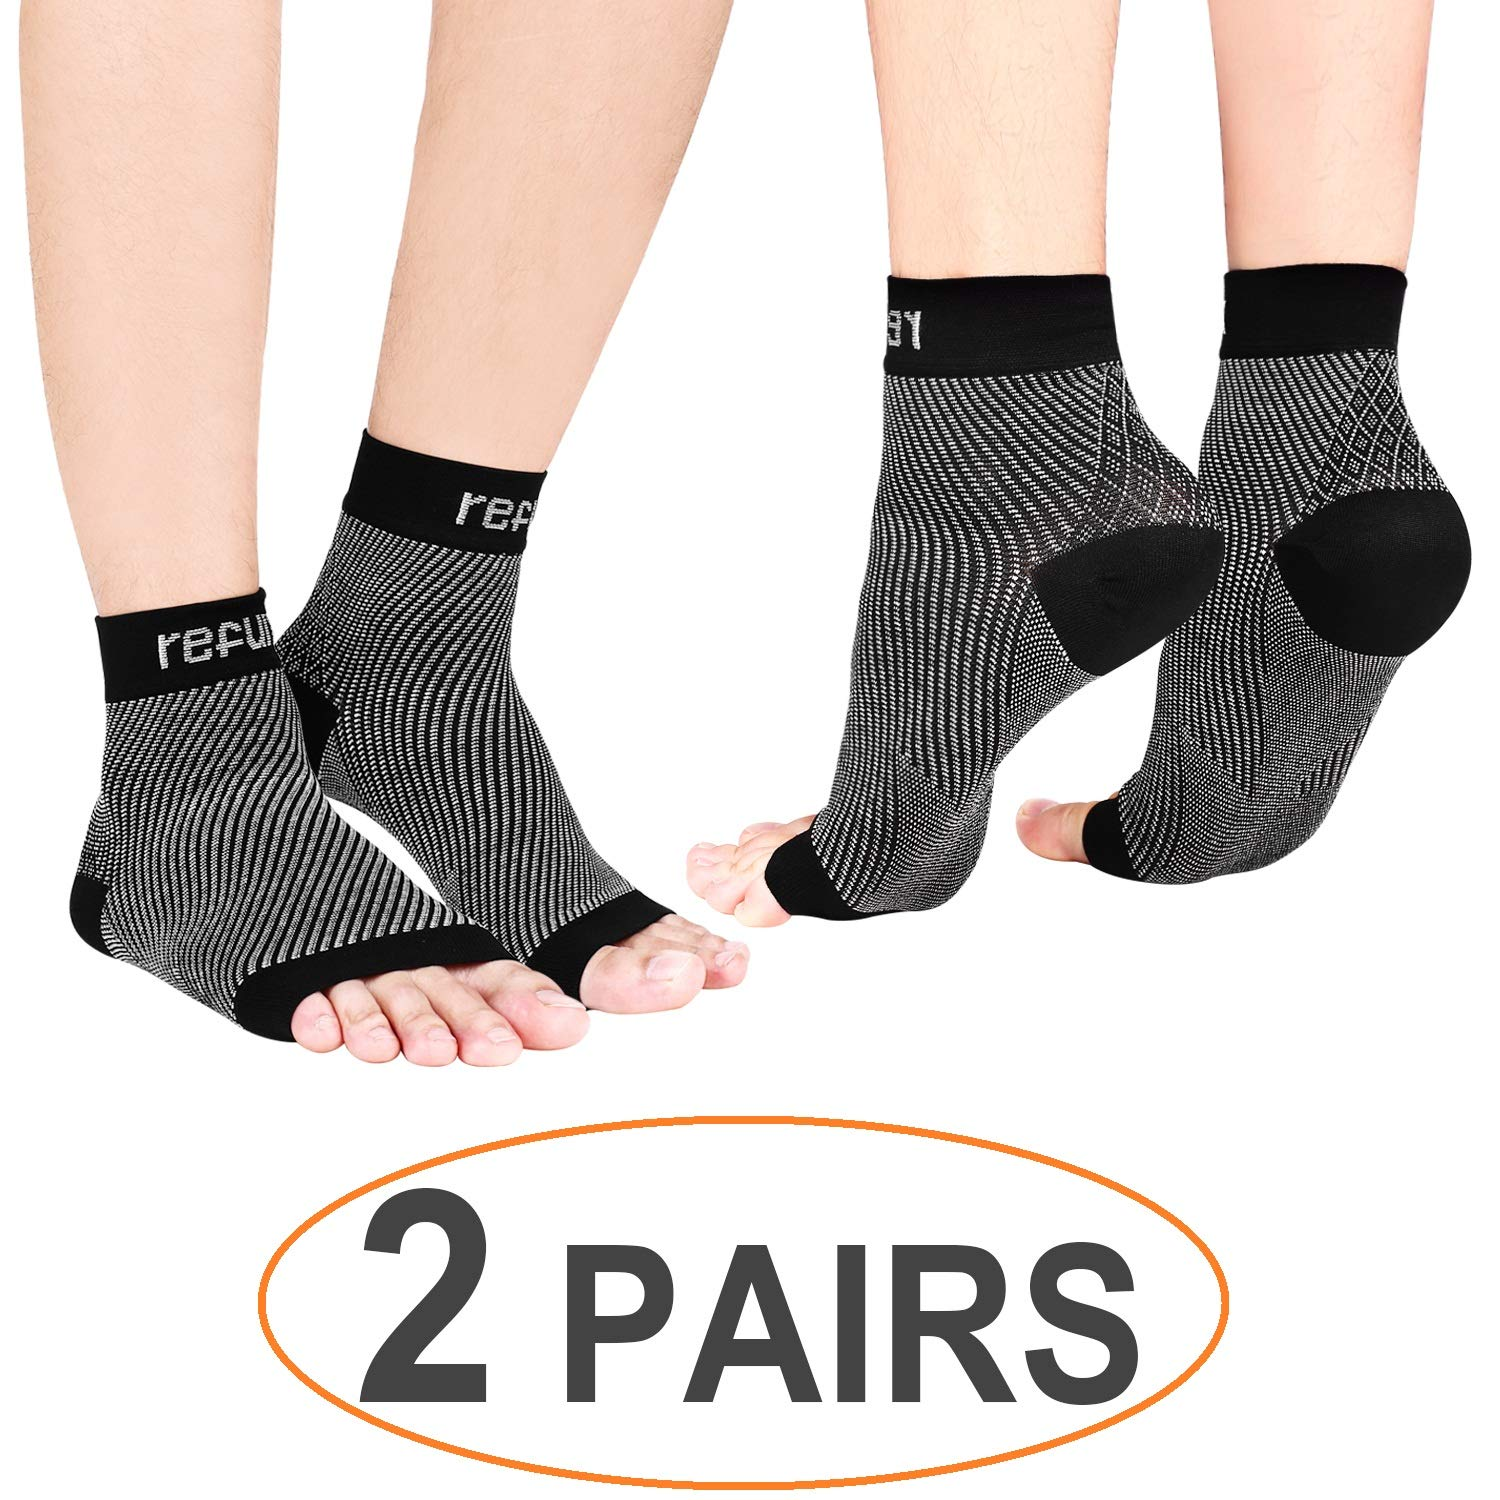 refun Plantar Fasciitis Socks (2 Pairs), Compression Foot Sleeves with Heel Arch & Ankle Support, Great Foot Care Compression Sleeve for Men & Women, Increase Blood Circulation, Relieve Arch Pain